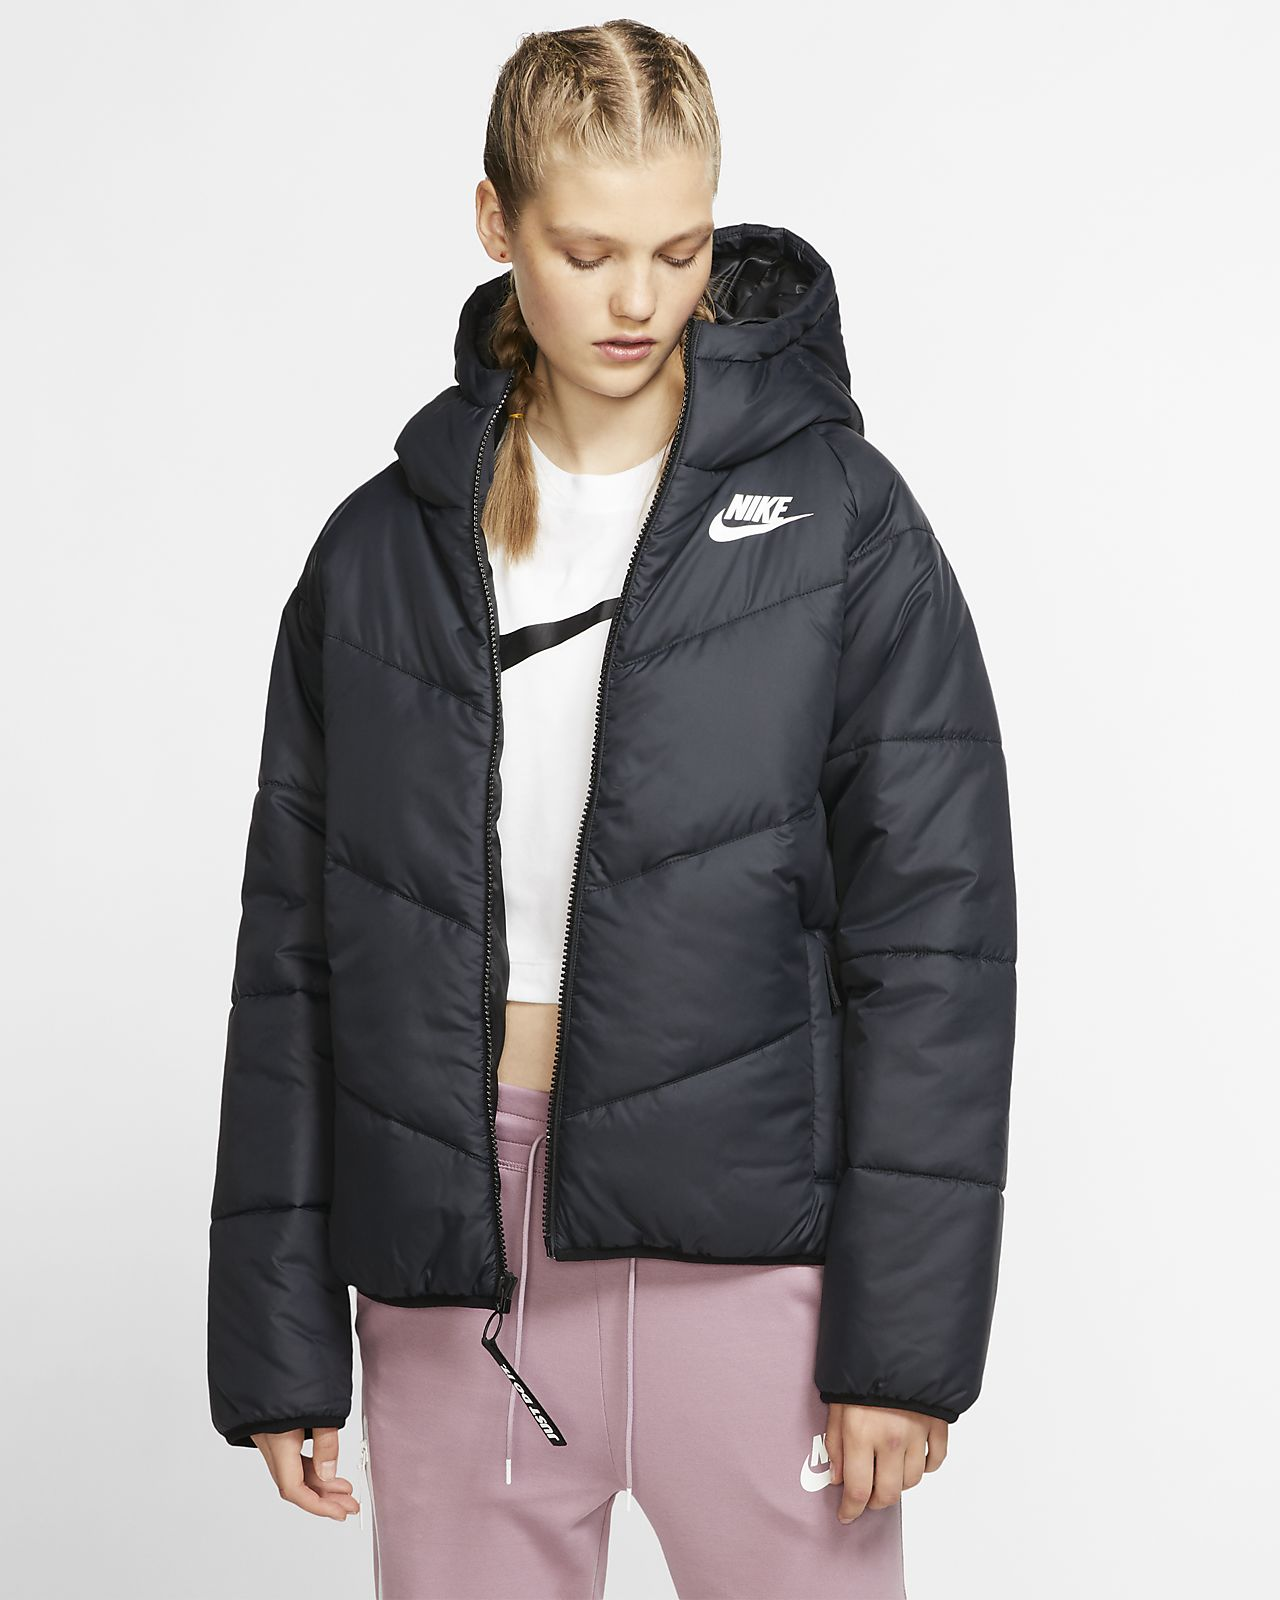 Nike Sportswear Windrunner Women's Hooded Jacket